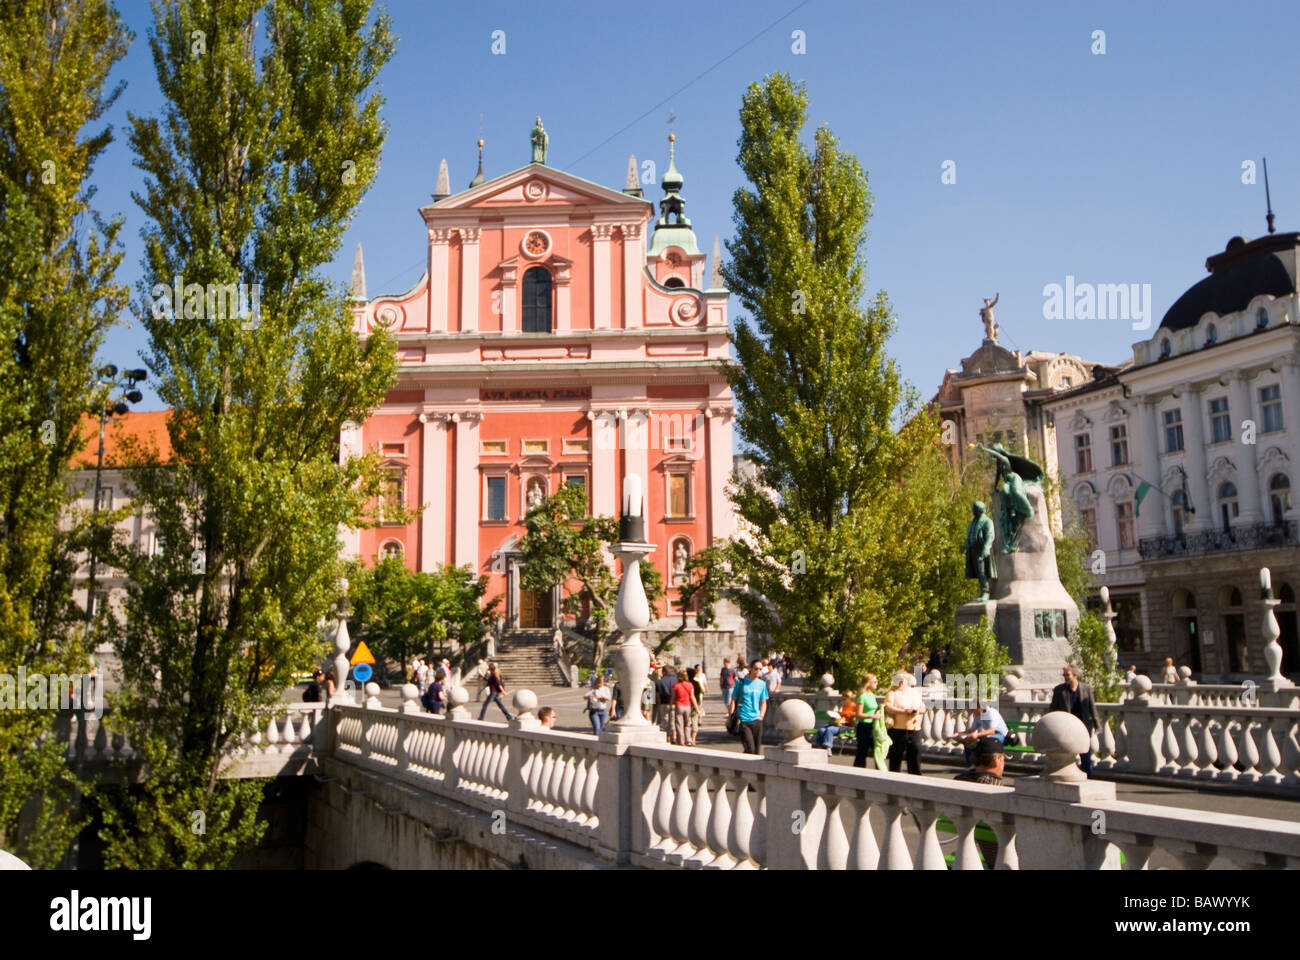 Slovenia, Ljubljana, Preseren Square, Church Of The Annunciation - Stock Image